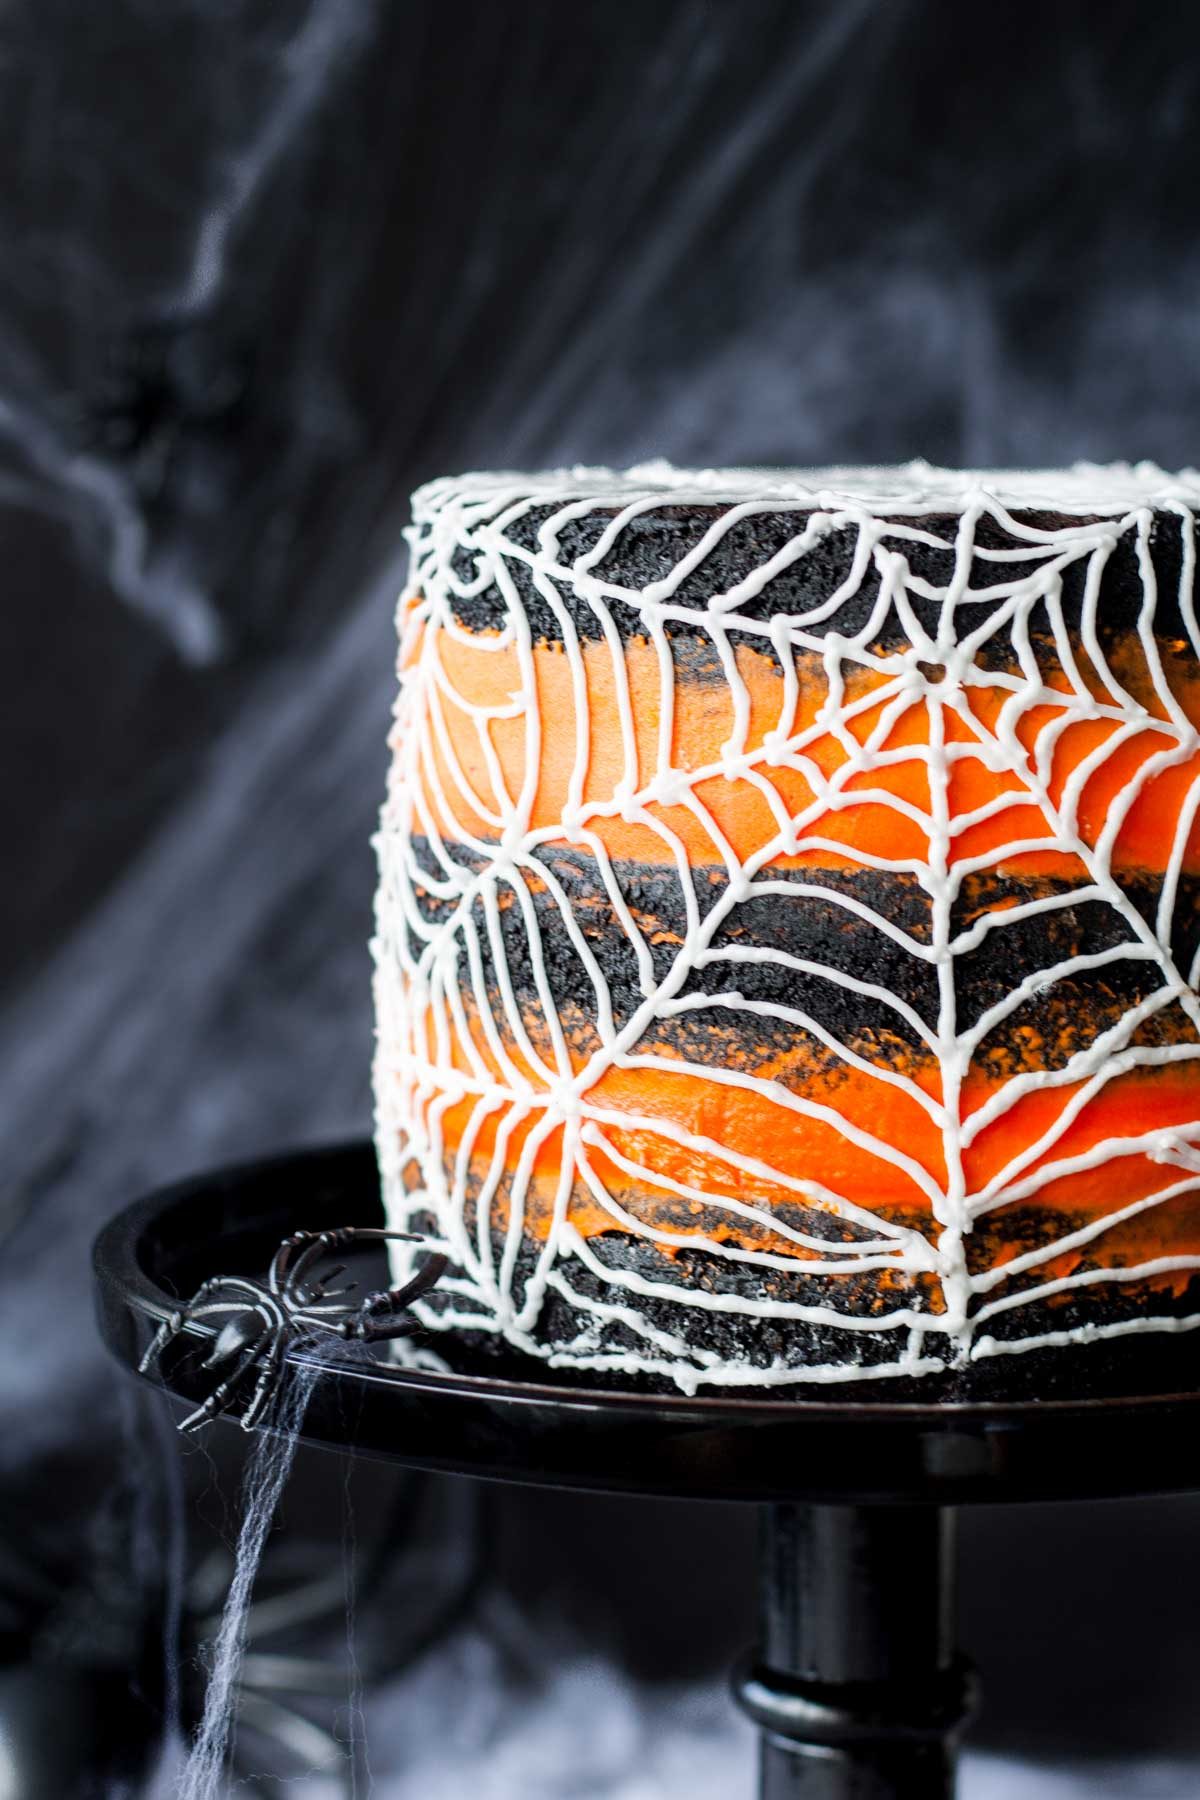 a side view of an orange and black cake with a white spider web made of icing